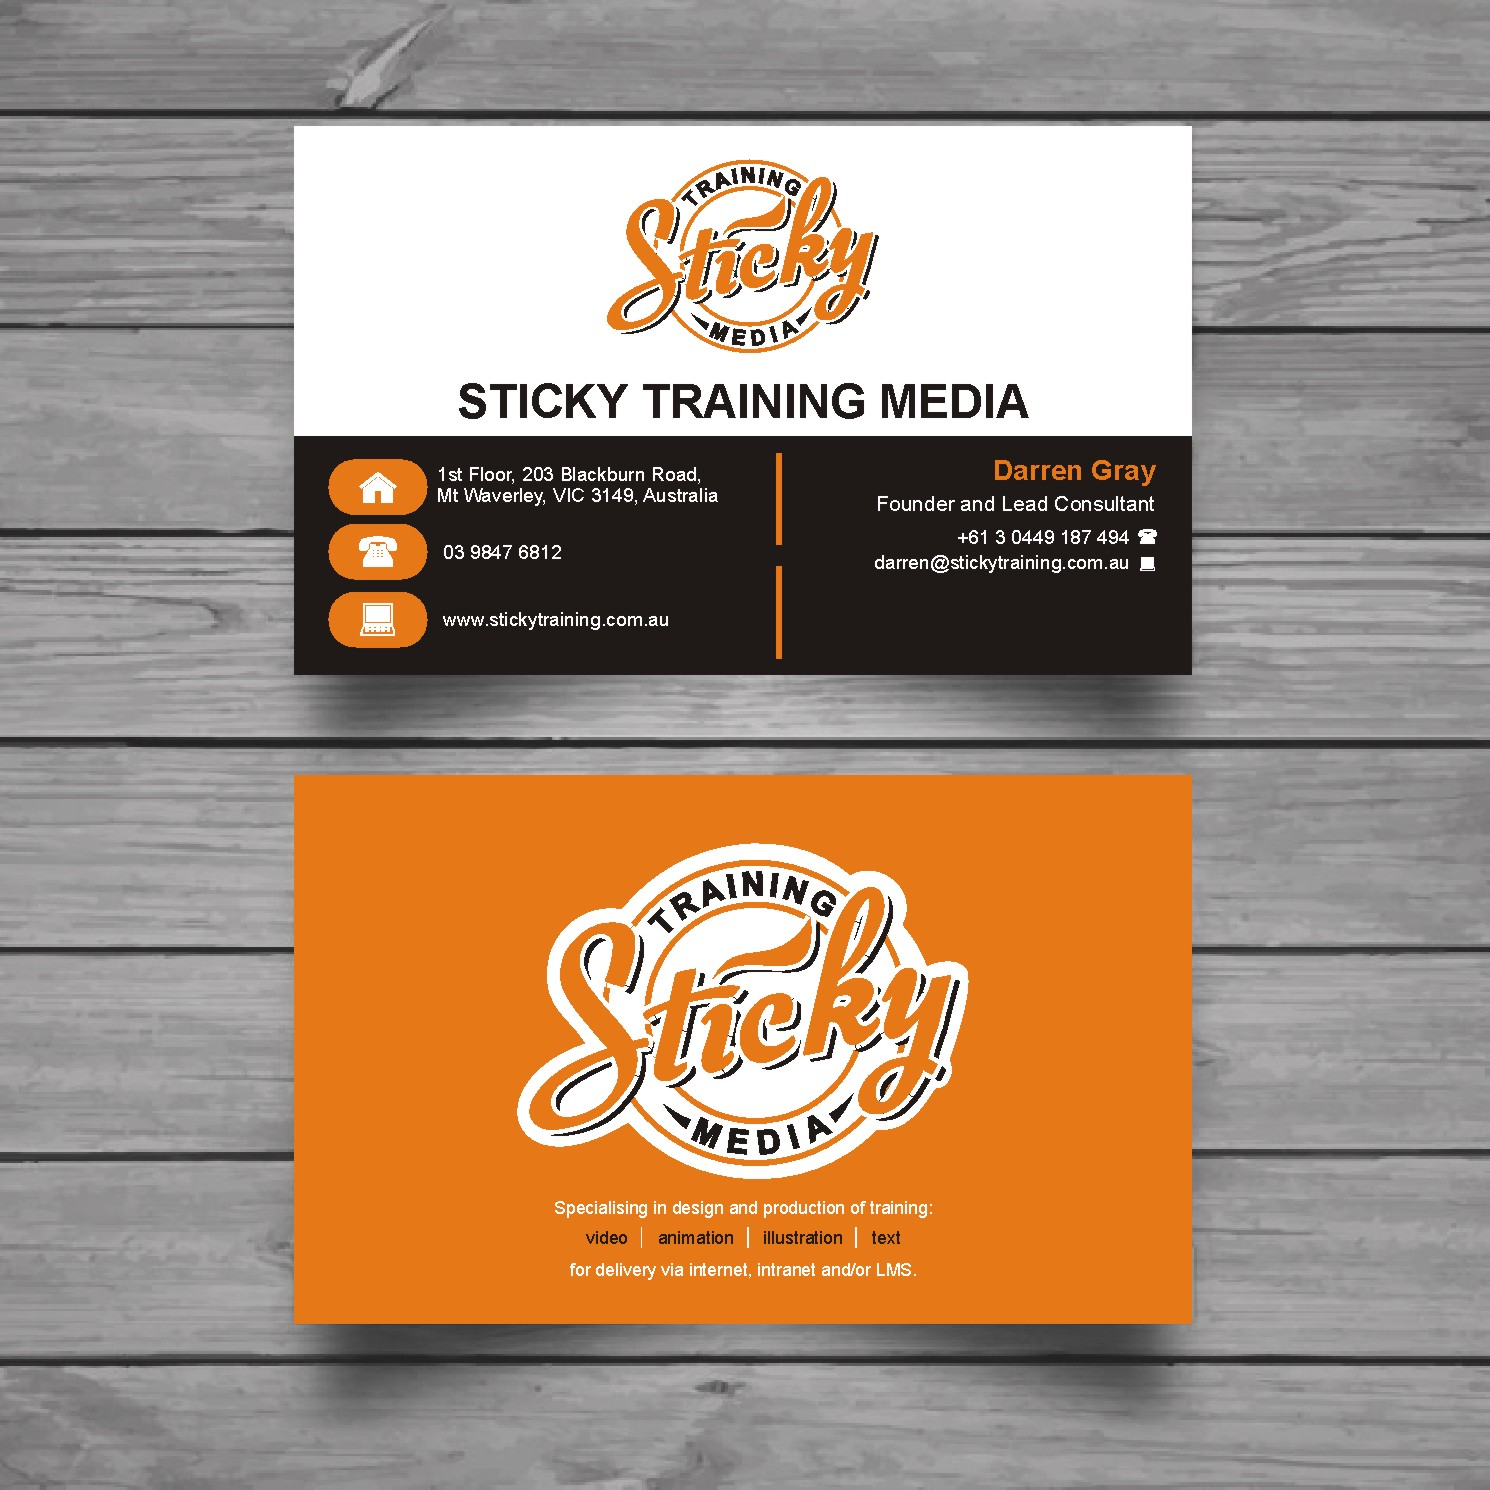 Serious modern training business card design for a company by business card design by raajesh for this project design 11906699 reheart Choice Image